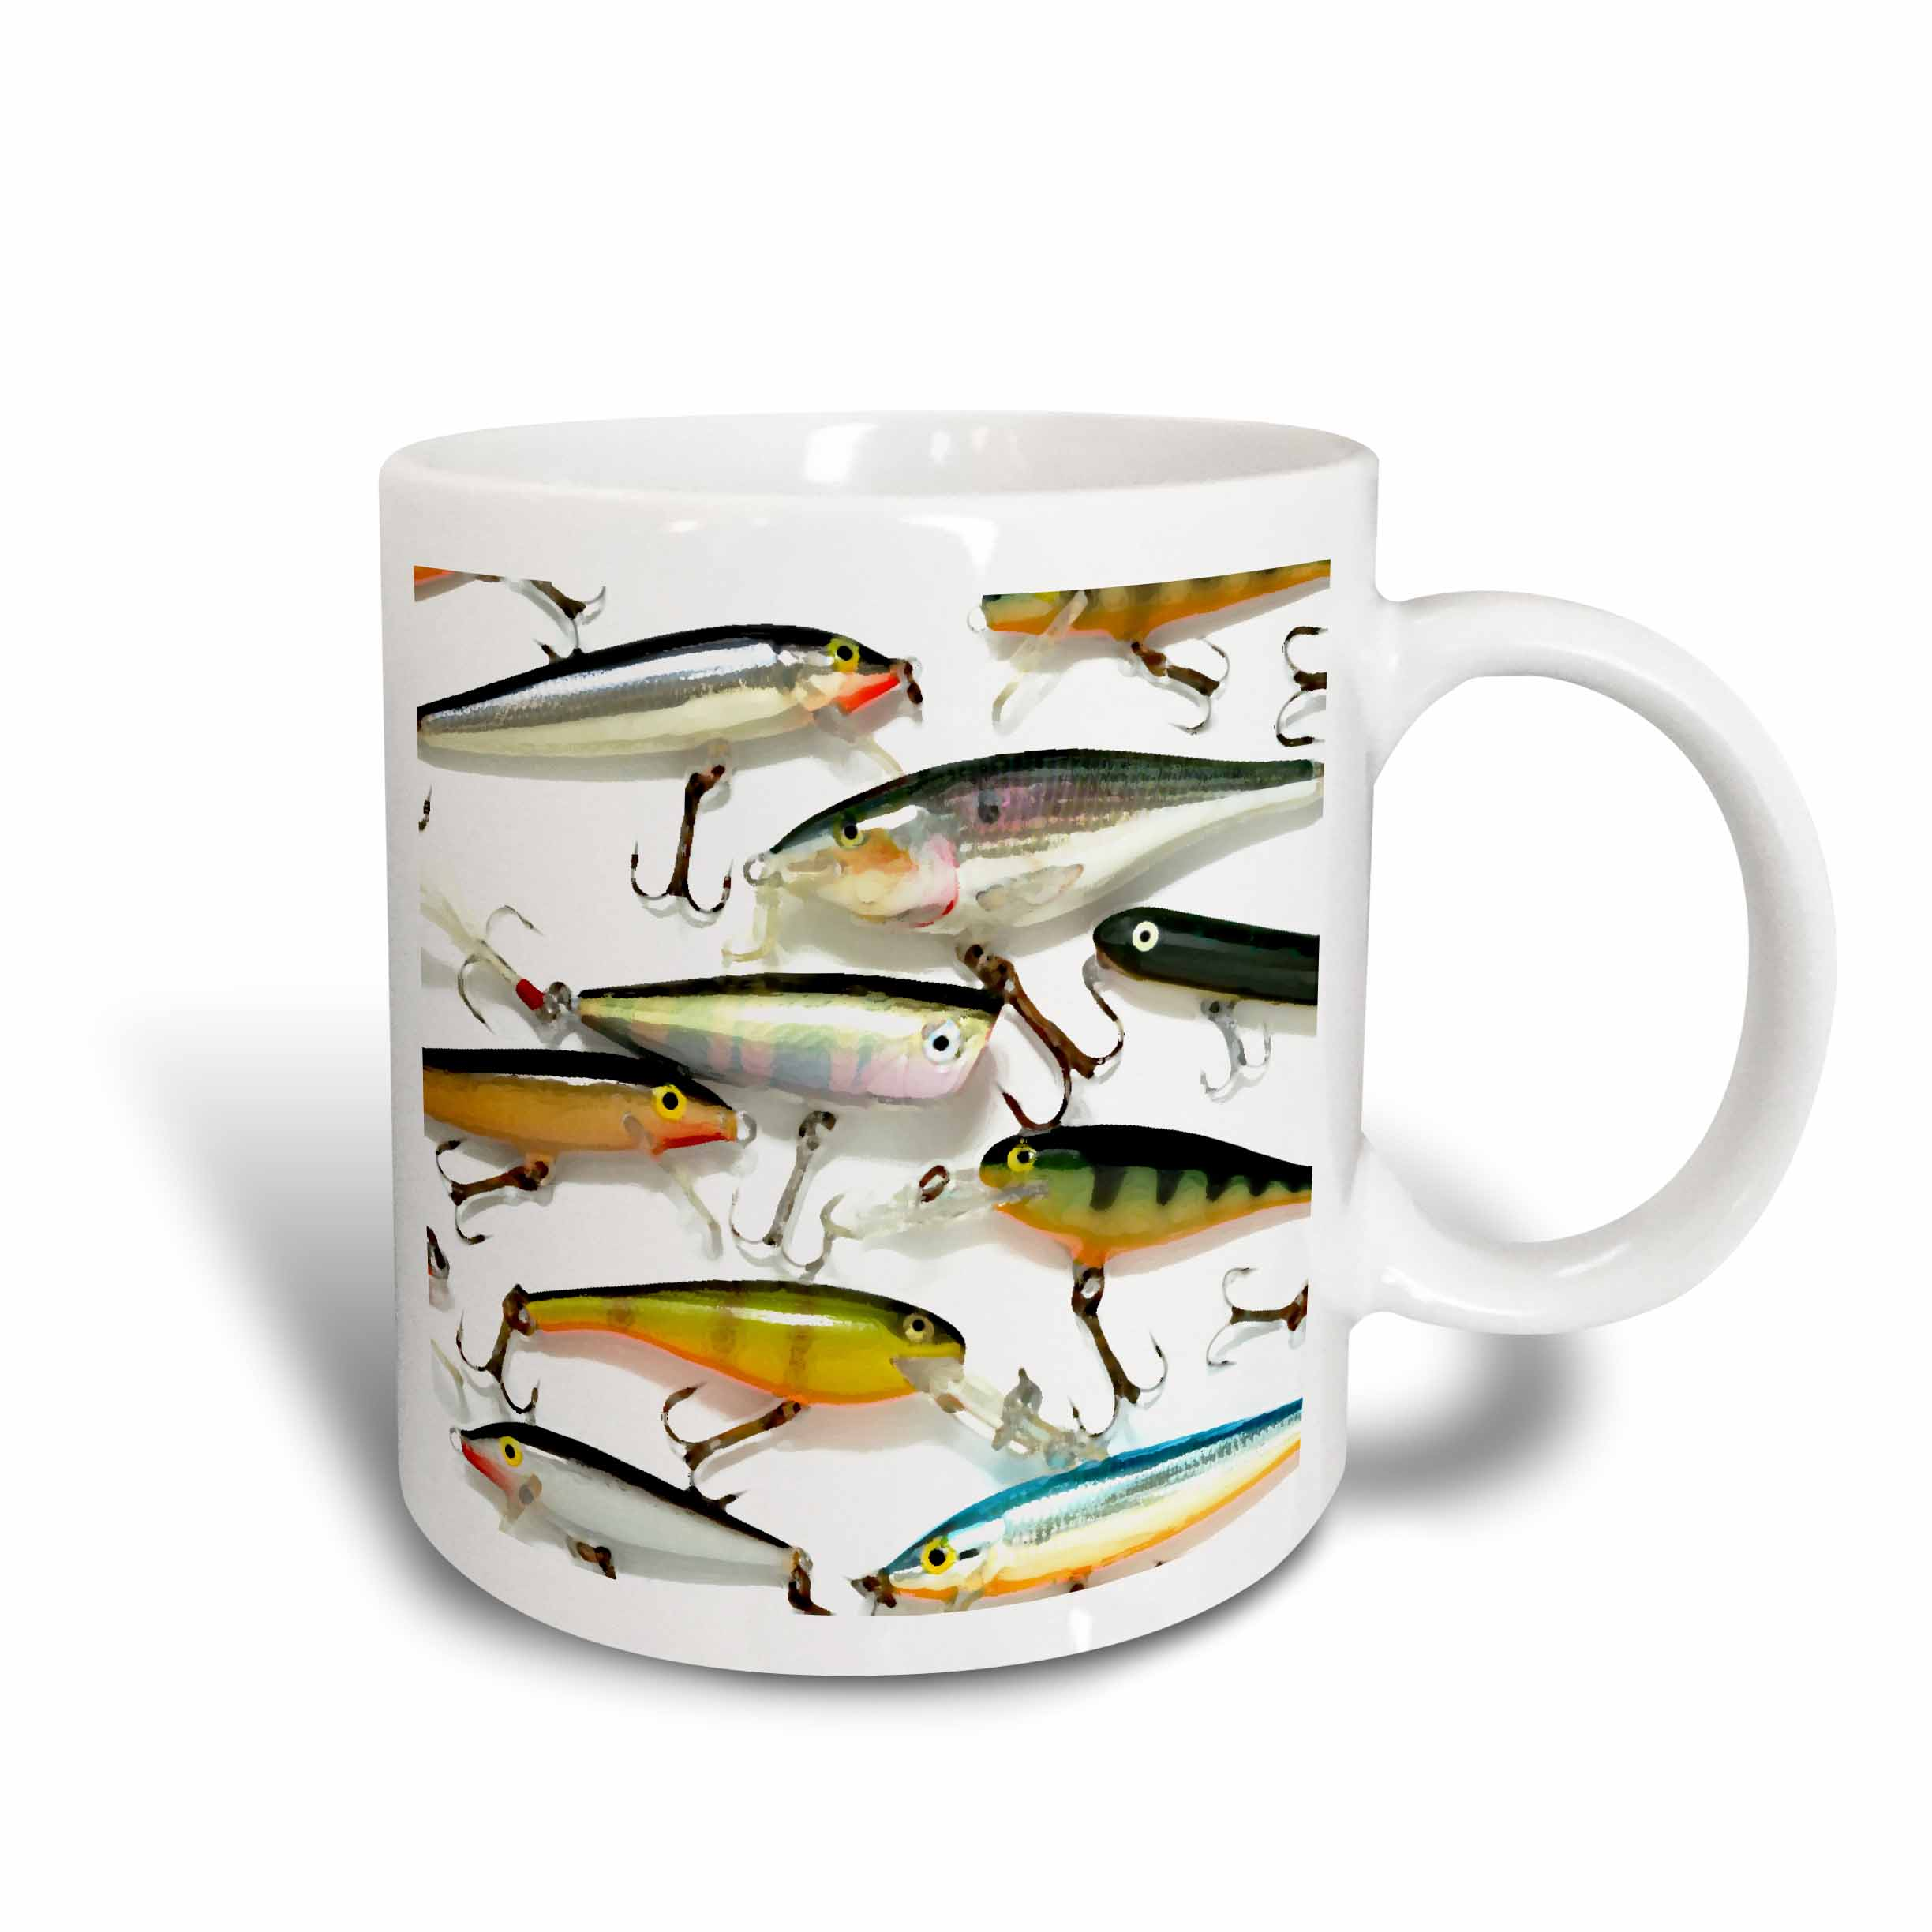 3dRose Fly fishing Lures, Ceramic Mug, 15-ounce